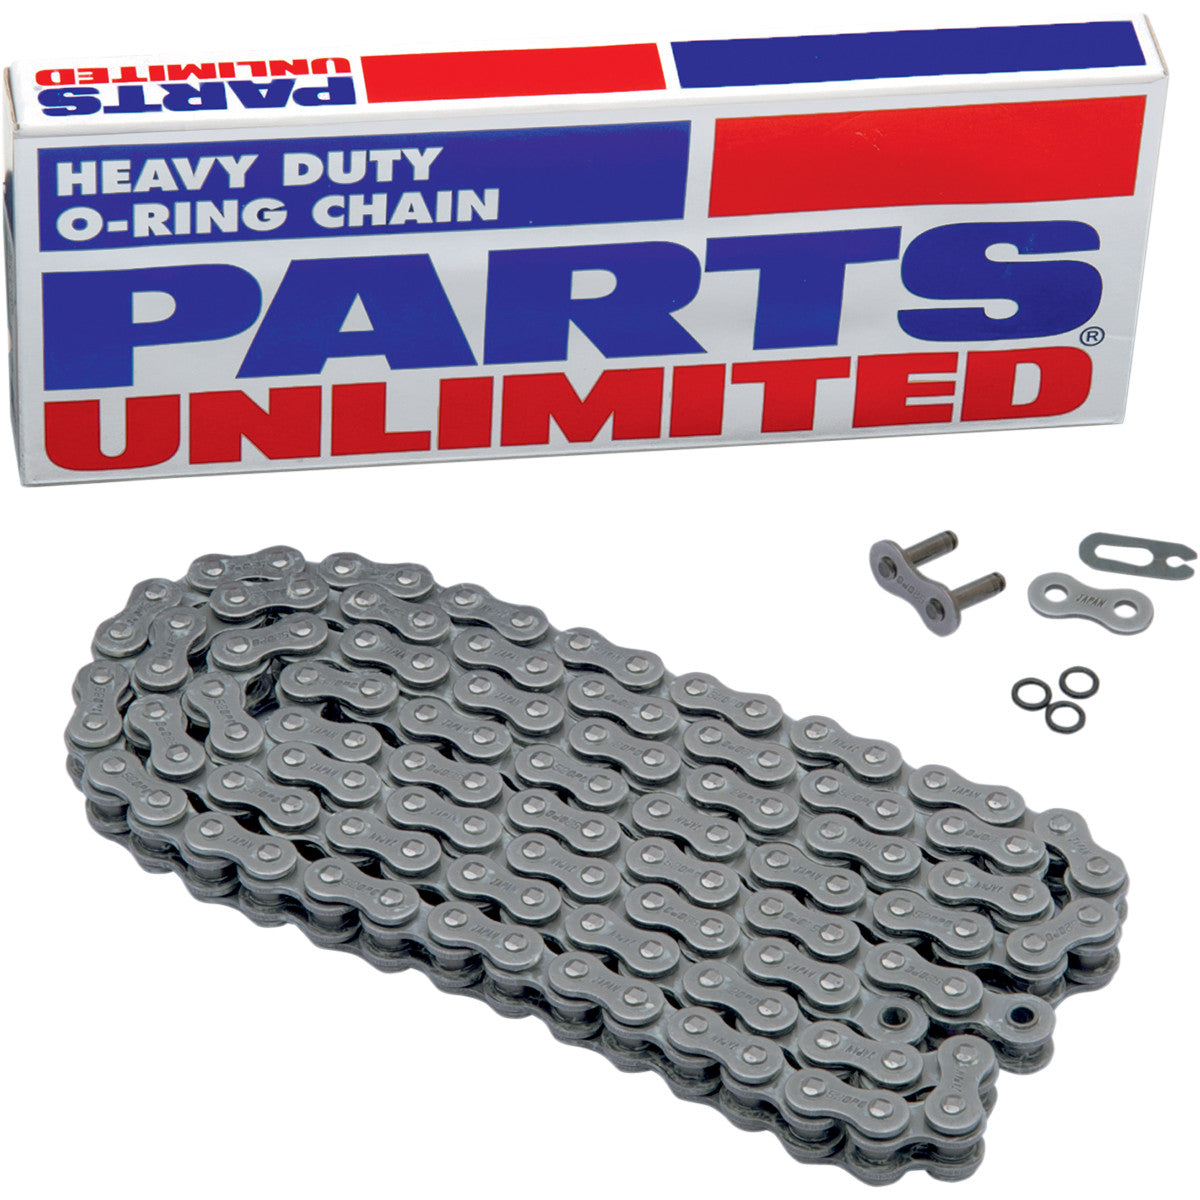 PARTS UNLIMITED-CHAIN CHAIN PU 525 X-RING X 25F